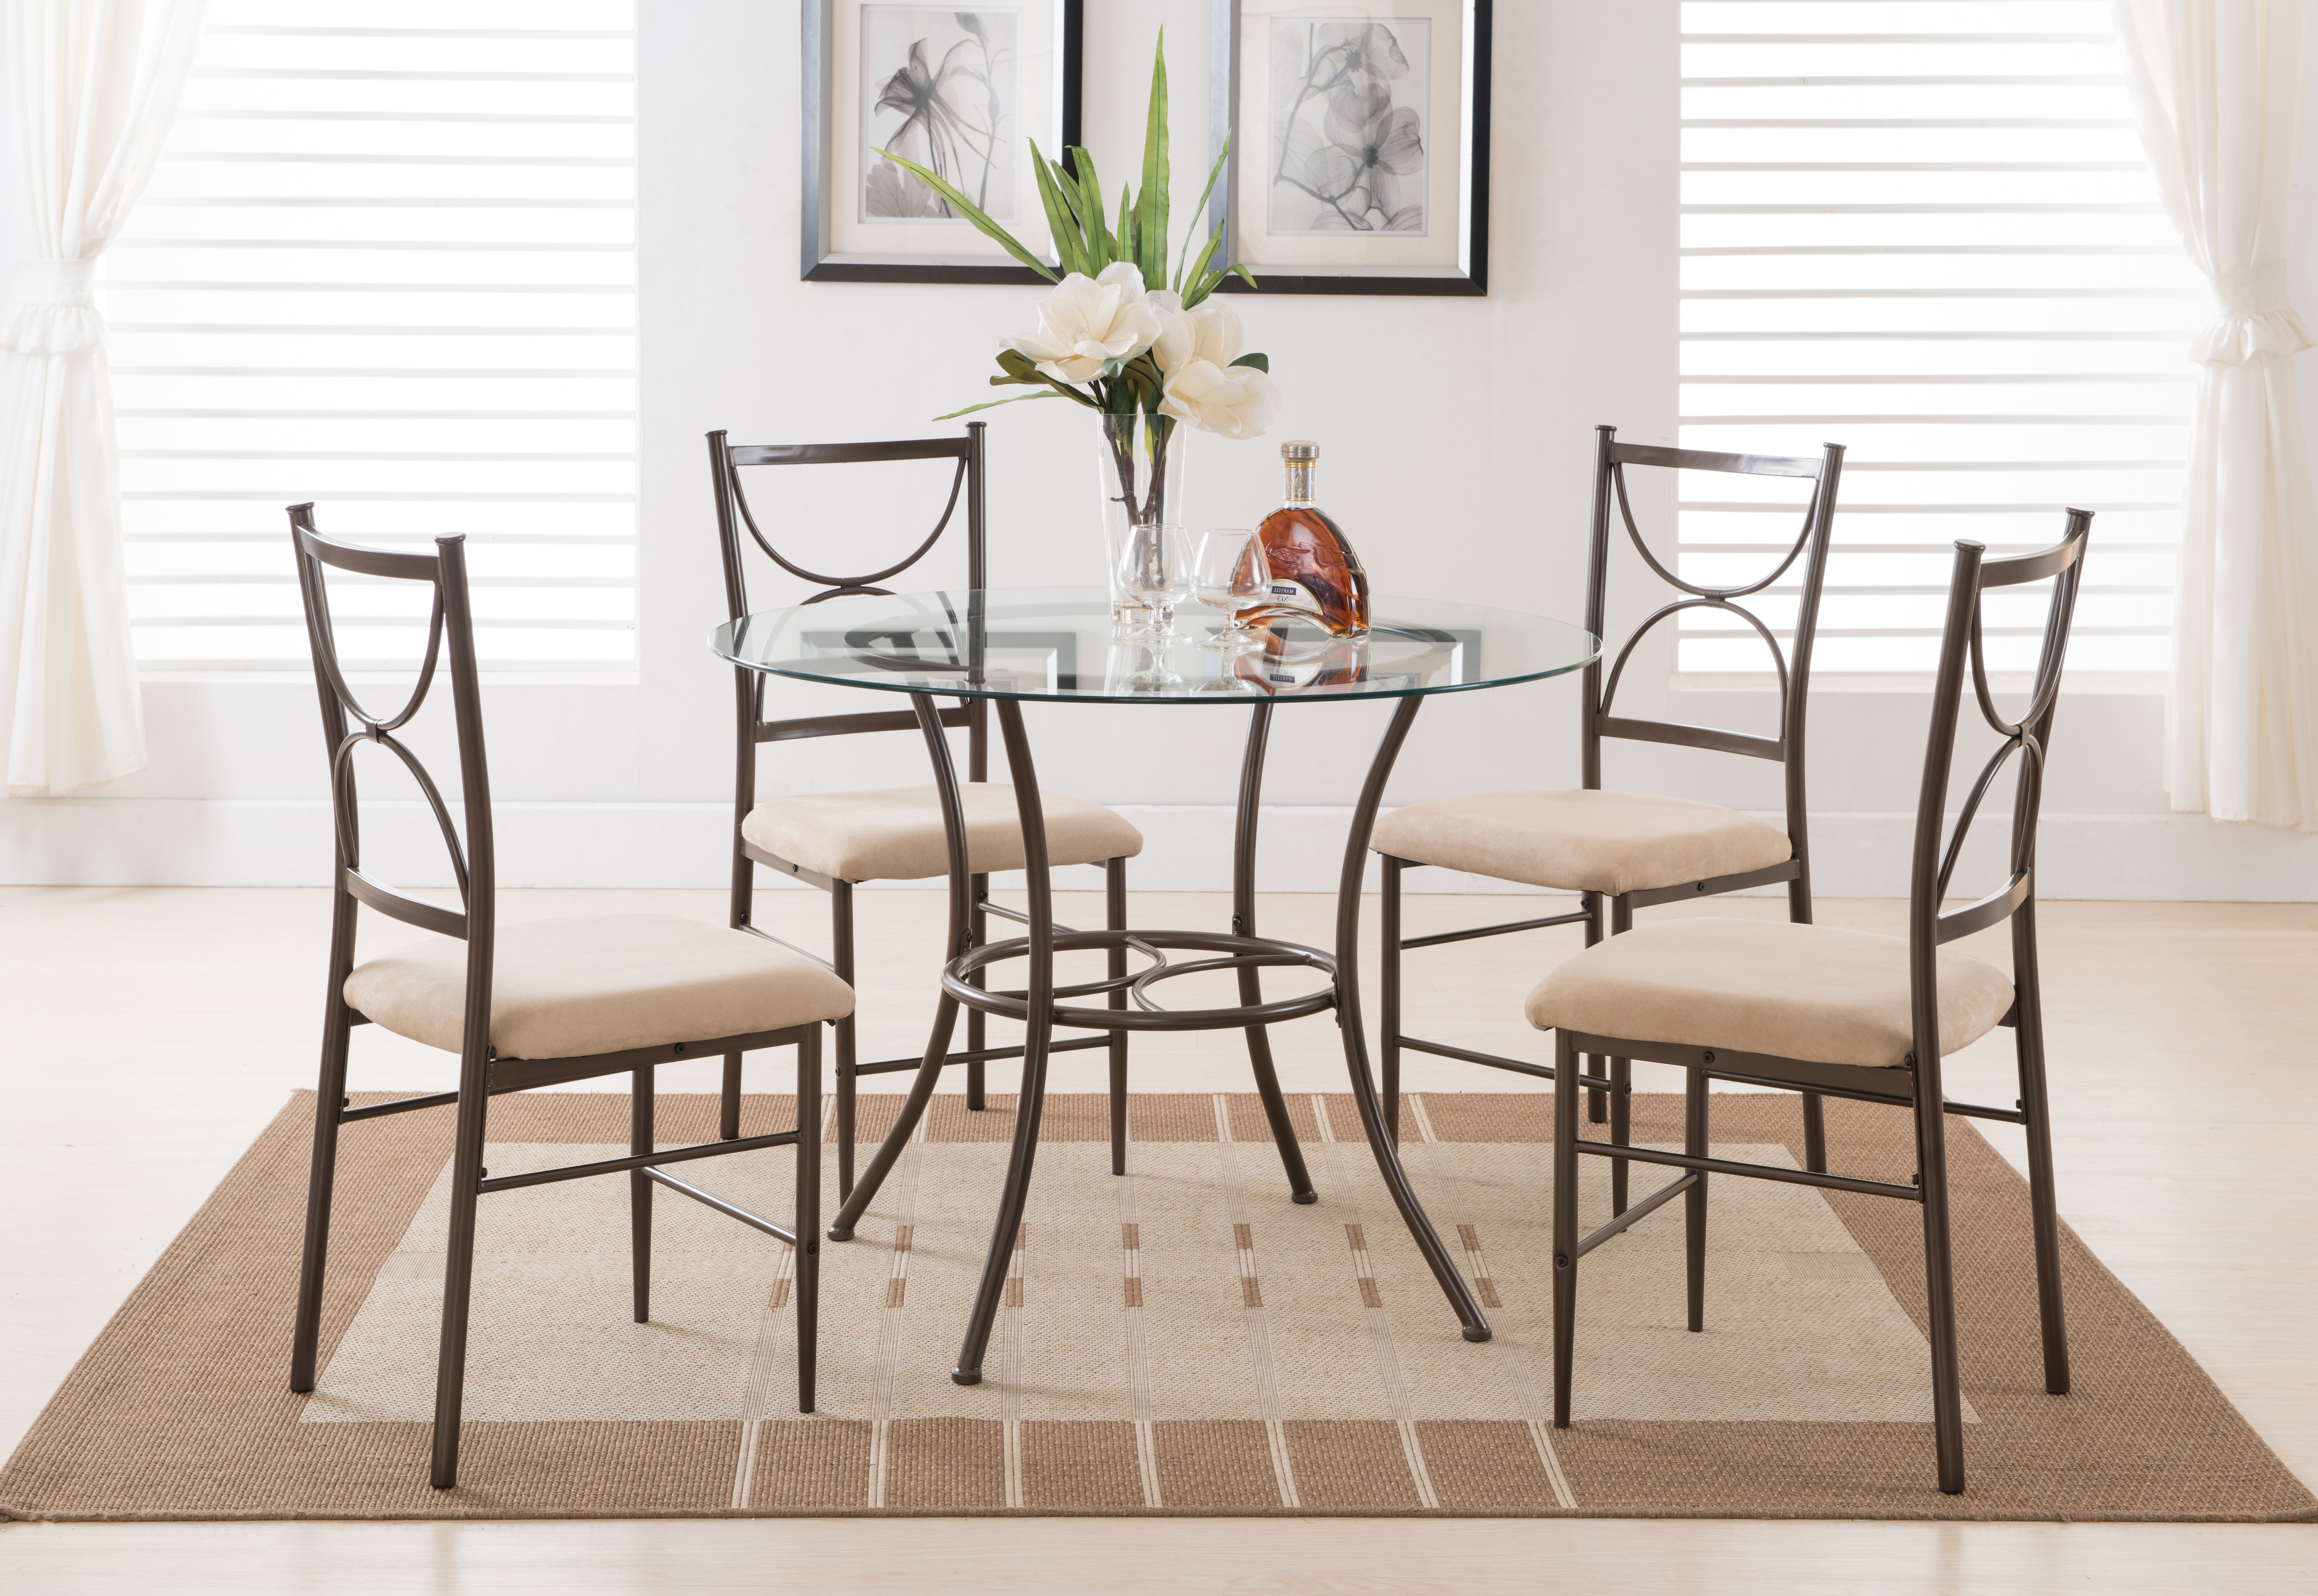 Newest Cargo 5 Piece Dining Sets Inside Tms Mason 5 Piece Cross Back Dining Set, Multiple Colors – Walmart (View 8 of 20)